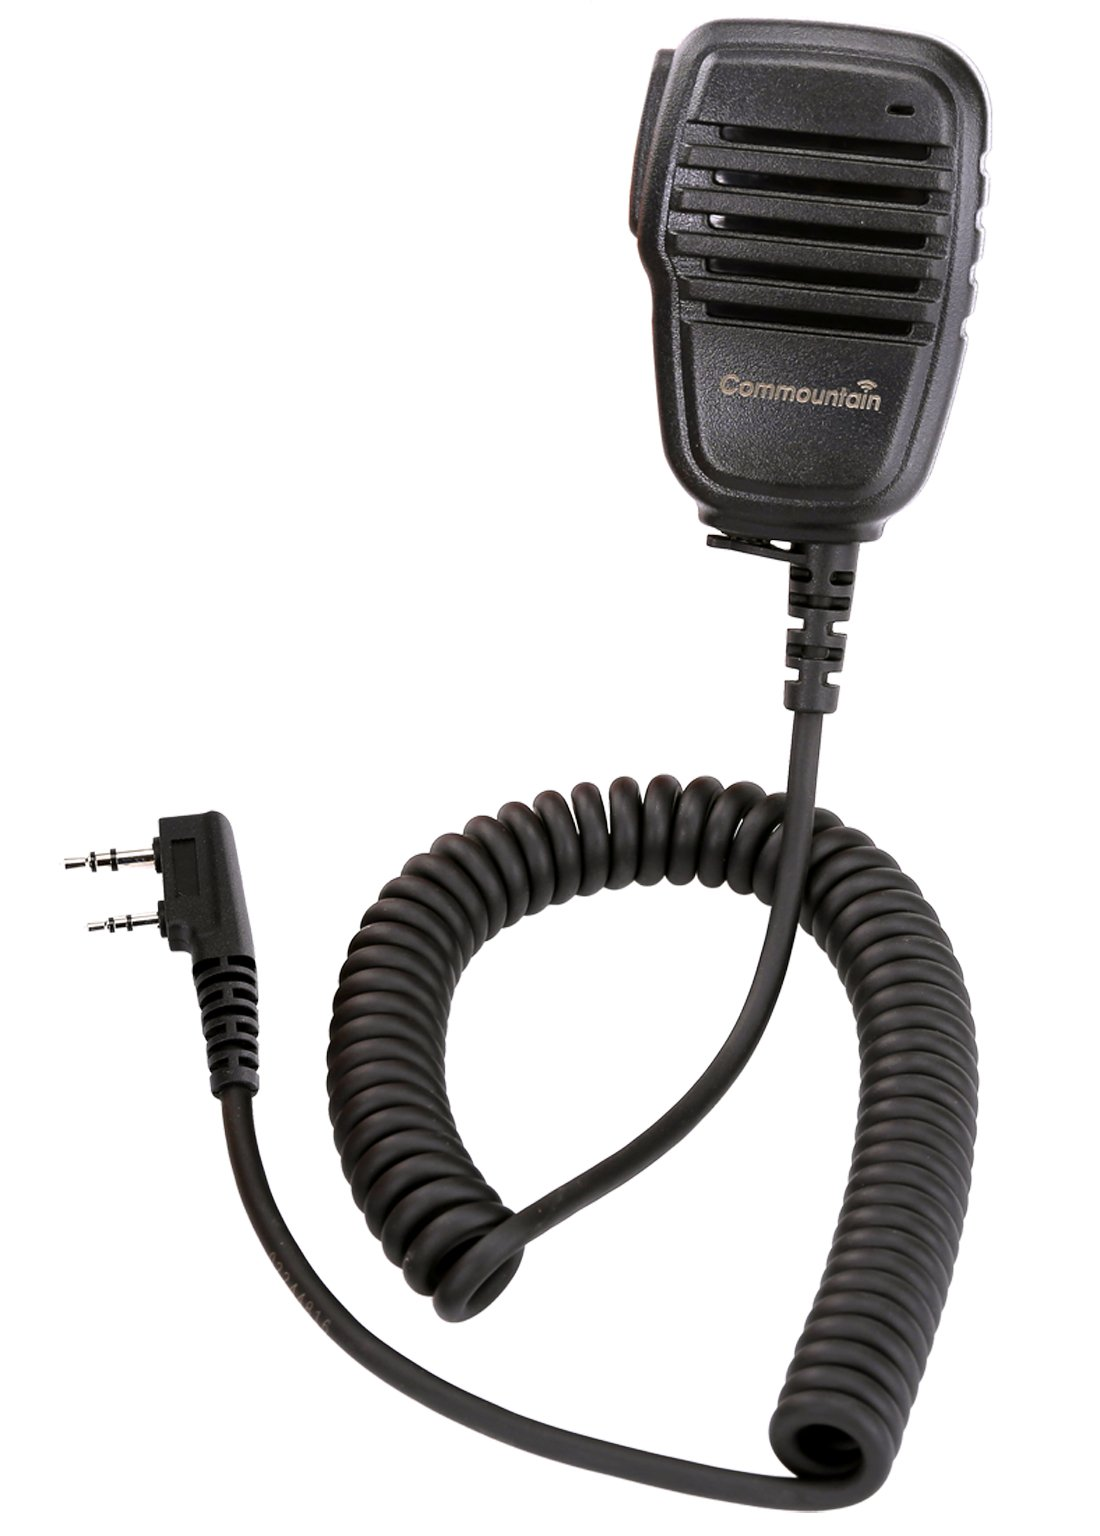 Compact Speaker Mic with Kevlar Reinforced Cable for Baofeng Radio BF-F8HP BF-F9 UV-82 UV-82HP UV-82C UV-5R UV-5R5 UV-5RA UV-5RE UV-5X3 V2+ and TYT Wouxun Kenwood Radio, Shoulder Speaker Microphone by Commountain (Image #5)